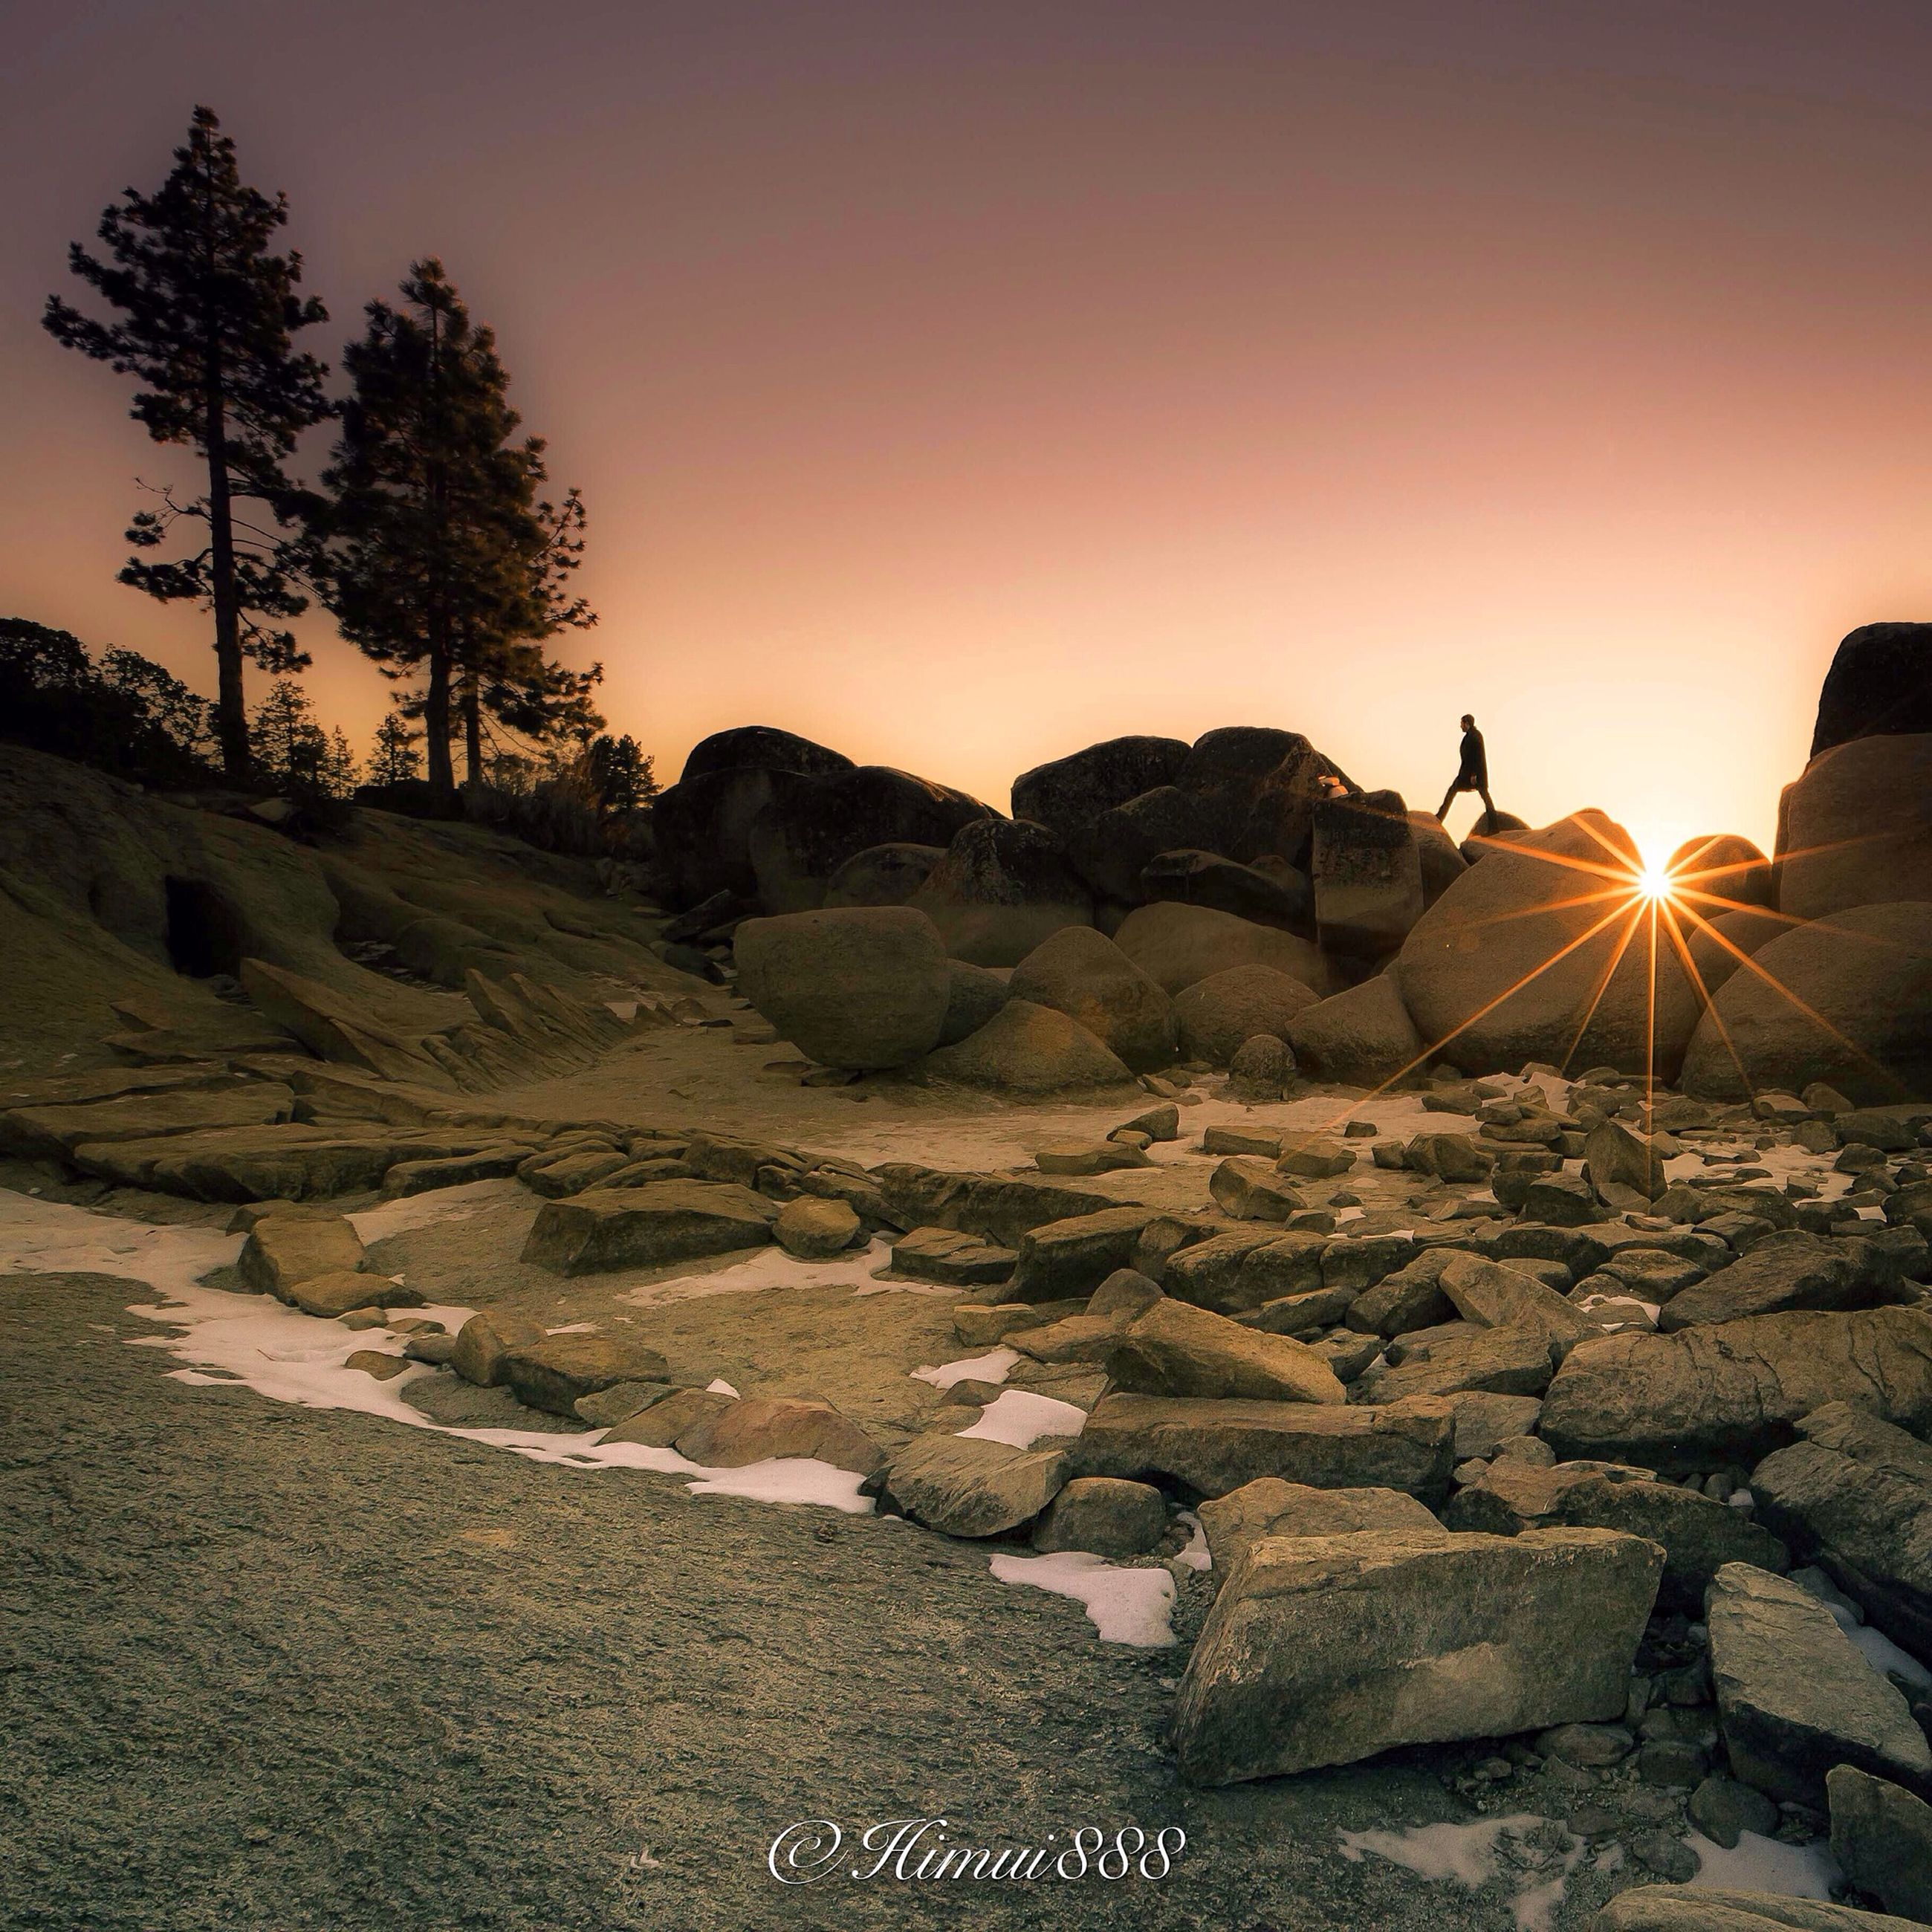 sunset, sun, clear sky, silhouette, rock - object, tranquil scene, scenics, tranquility, nature, sunlight, beauty in nature, landscape, rock formation, mountain, copy space, full length, leisure activity, sky